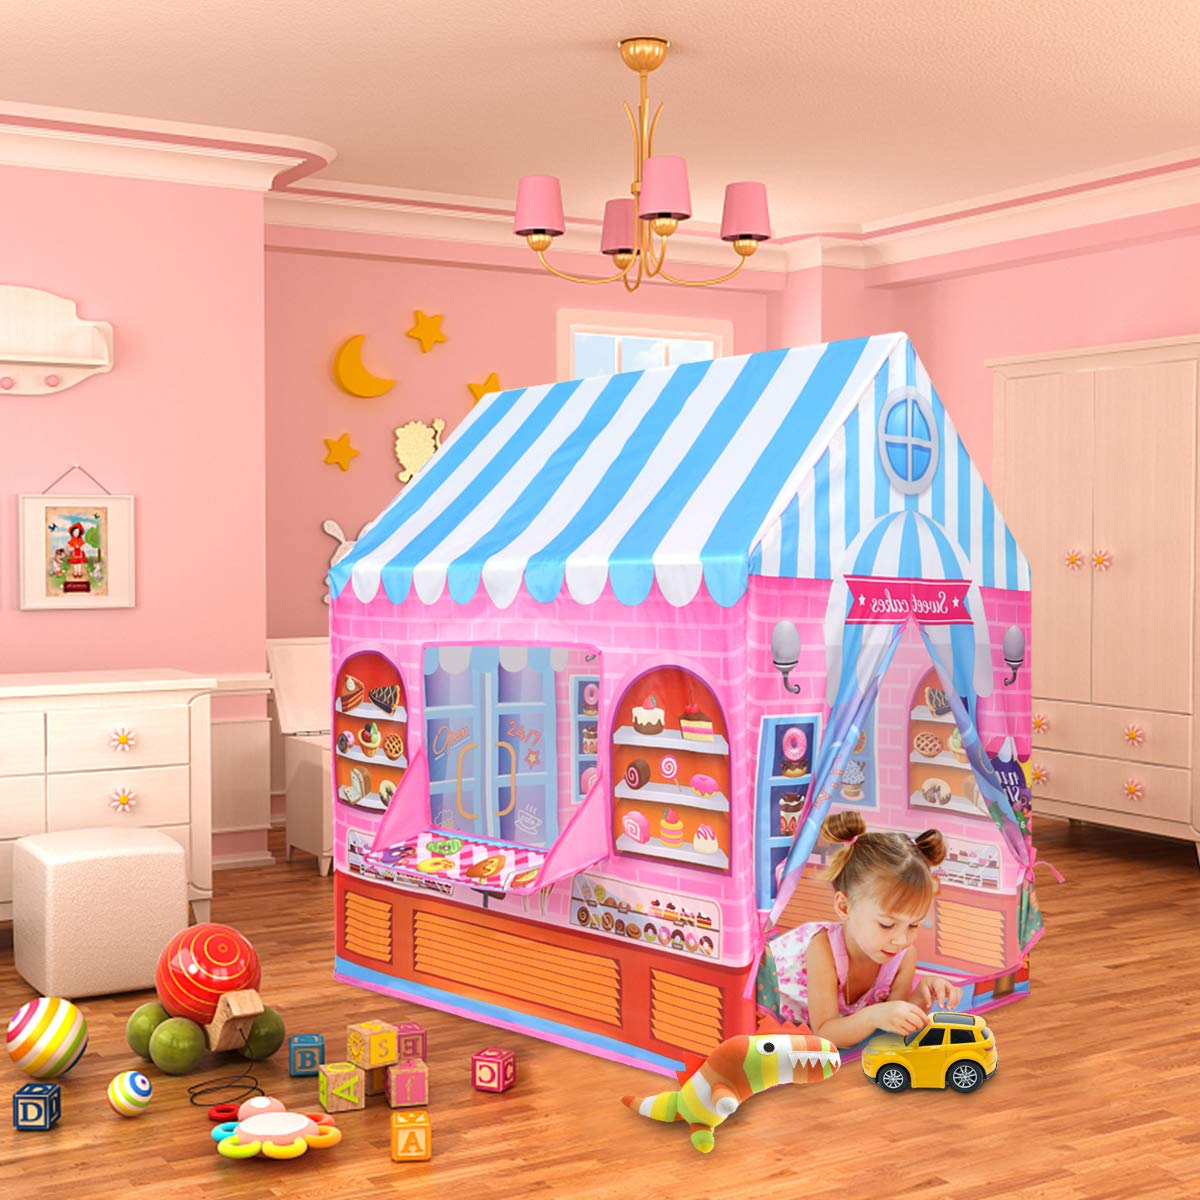 Anyshock Playhouse for Kids Tent Candy Castle Play House for 1-6 Year Old Children Boys Girls Baby Indoor Outdoor Gifts Toys Pink